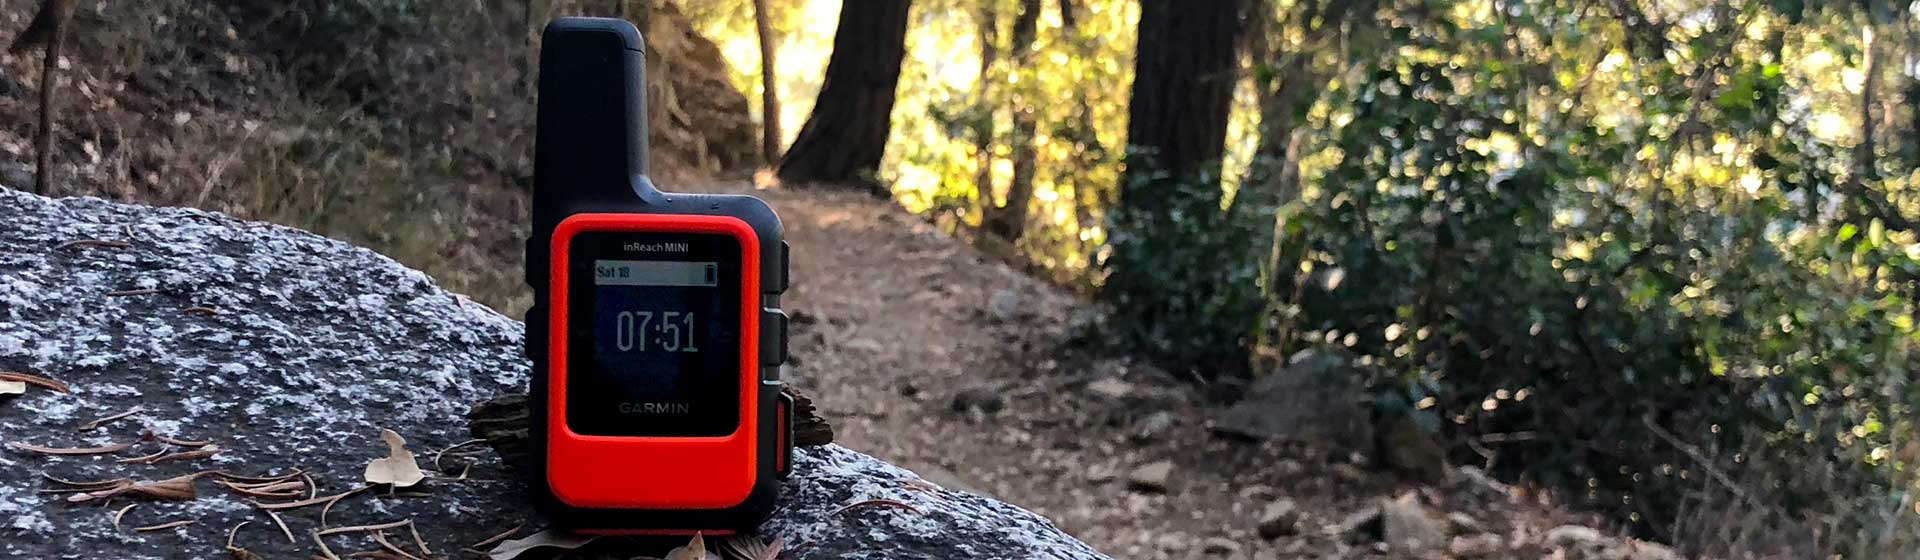 inreach-mini-large pic.jpg